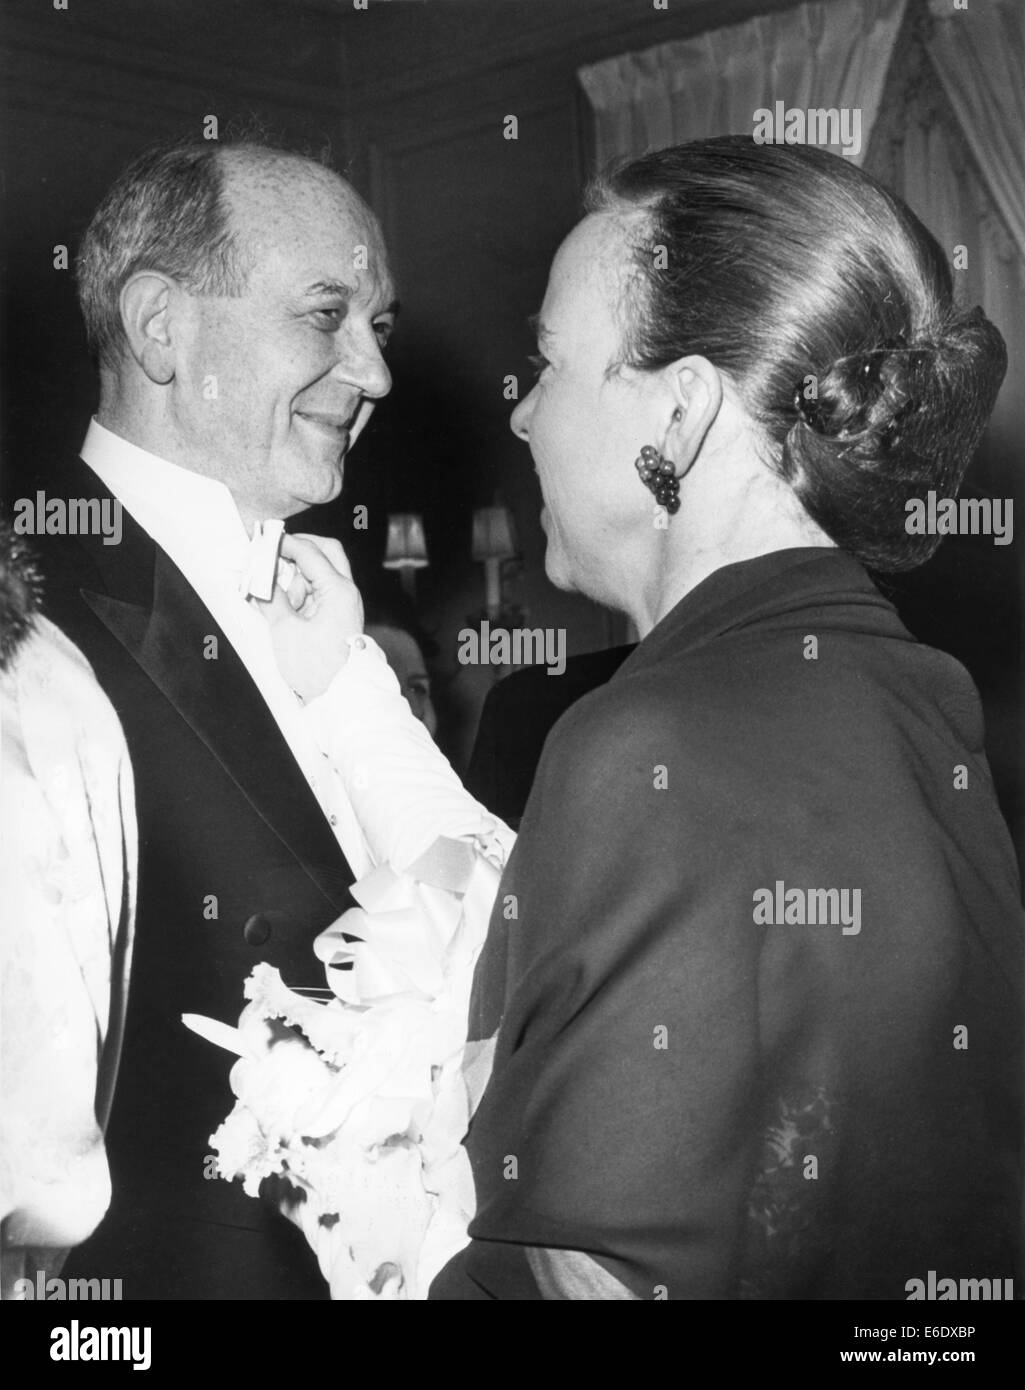 U.S. Secretary of State Dean Rusk with Wife, Virginia, at Formal Dinner given by Nicaraguan Ambassador, Washington, - Stock Image